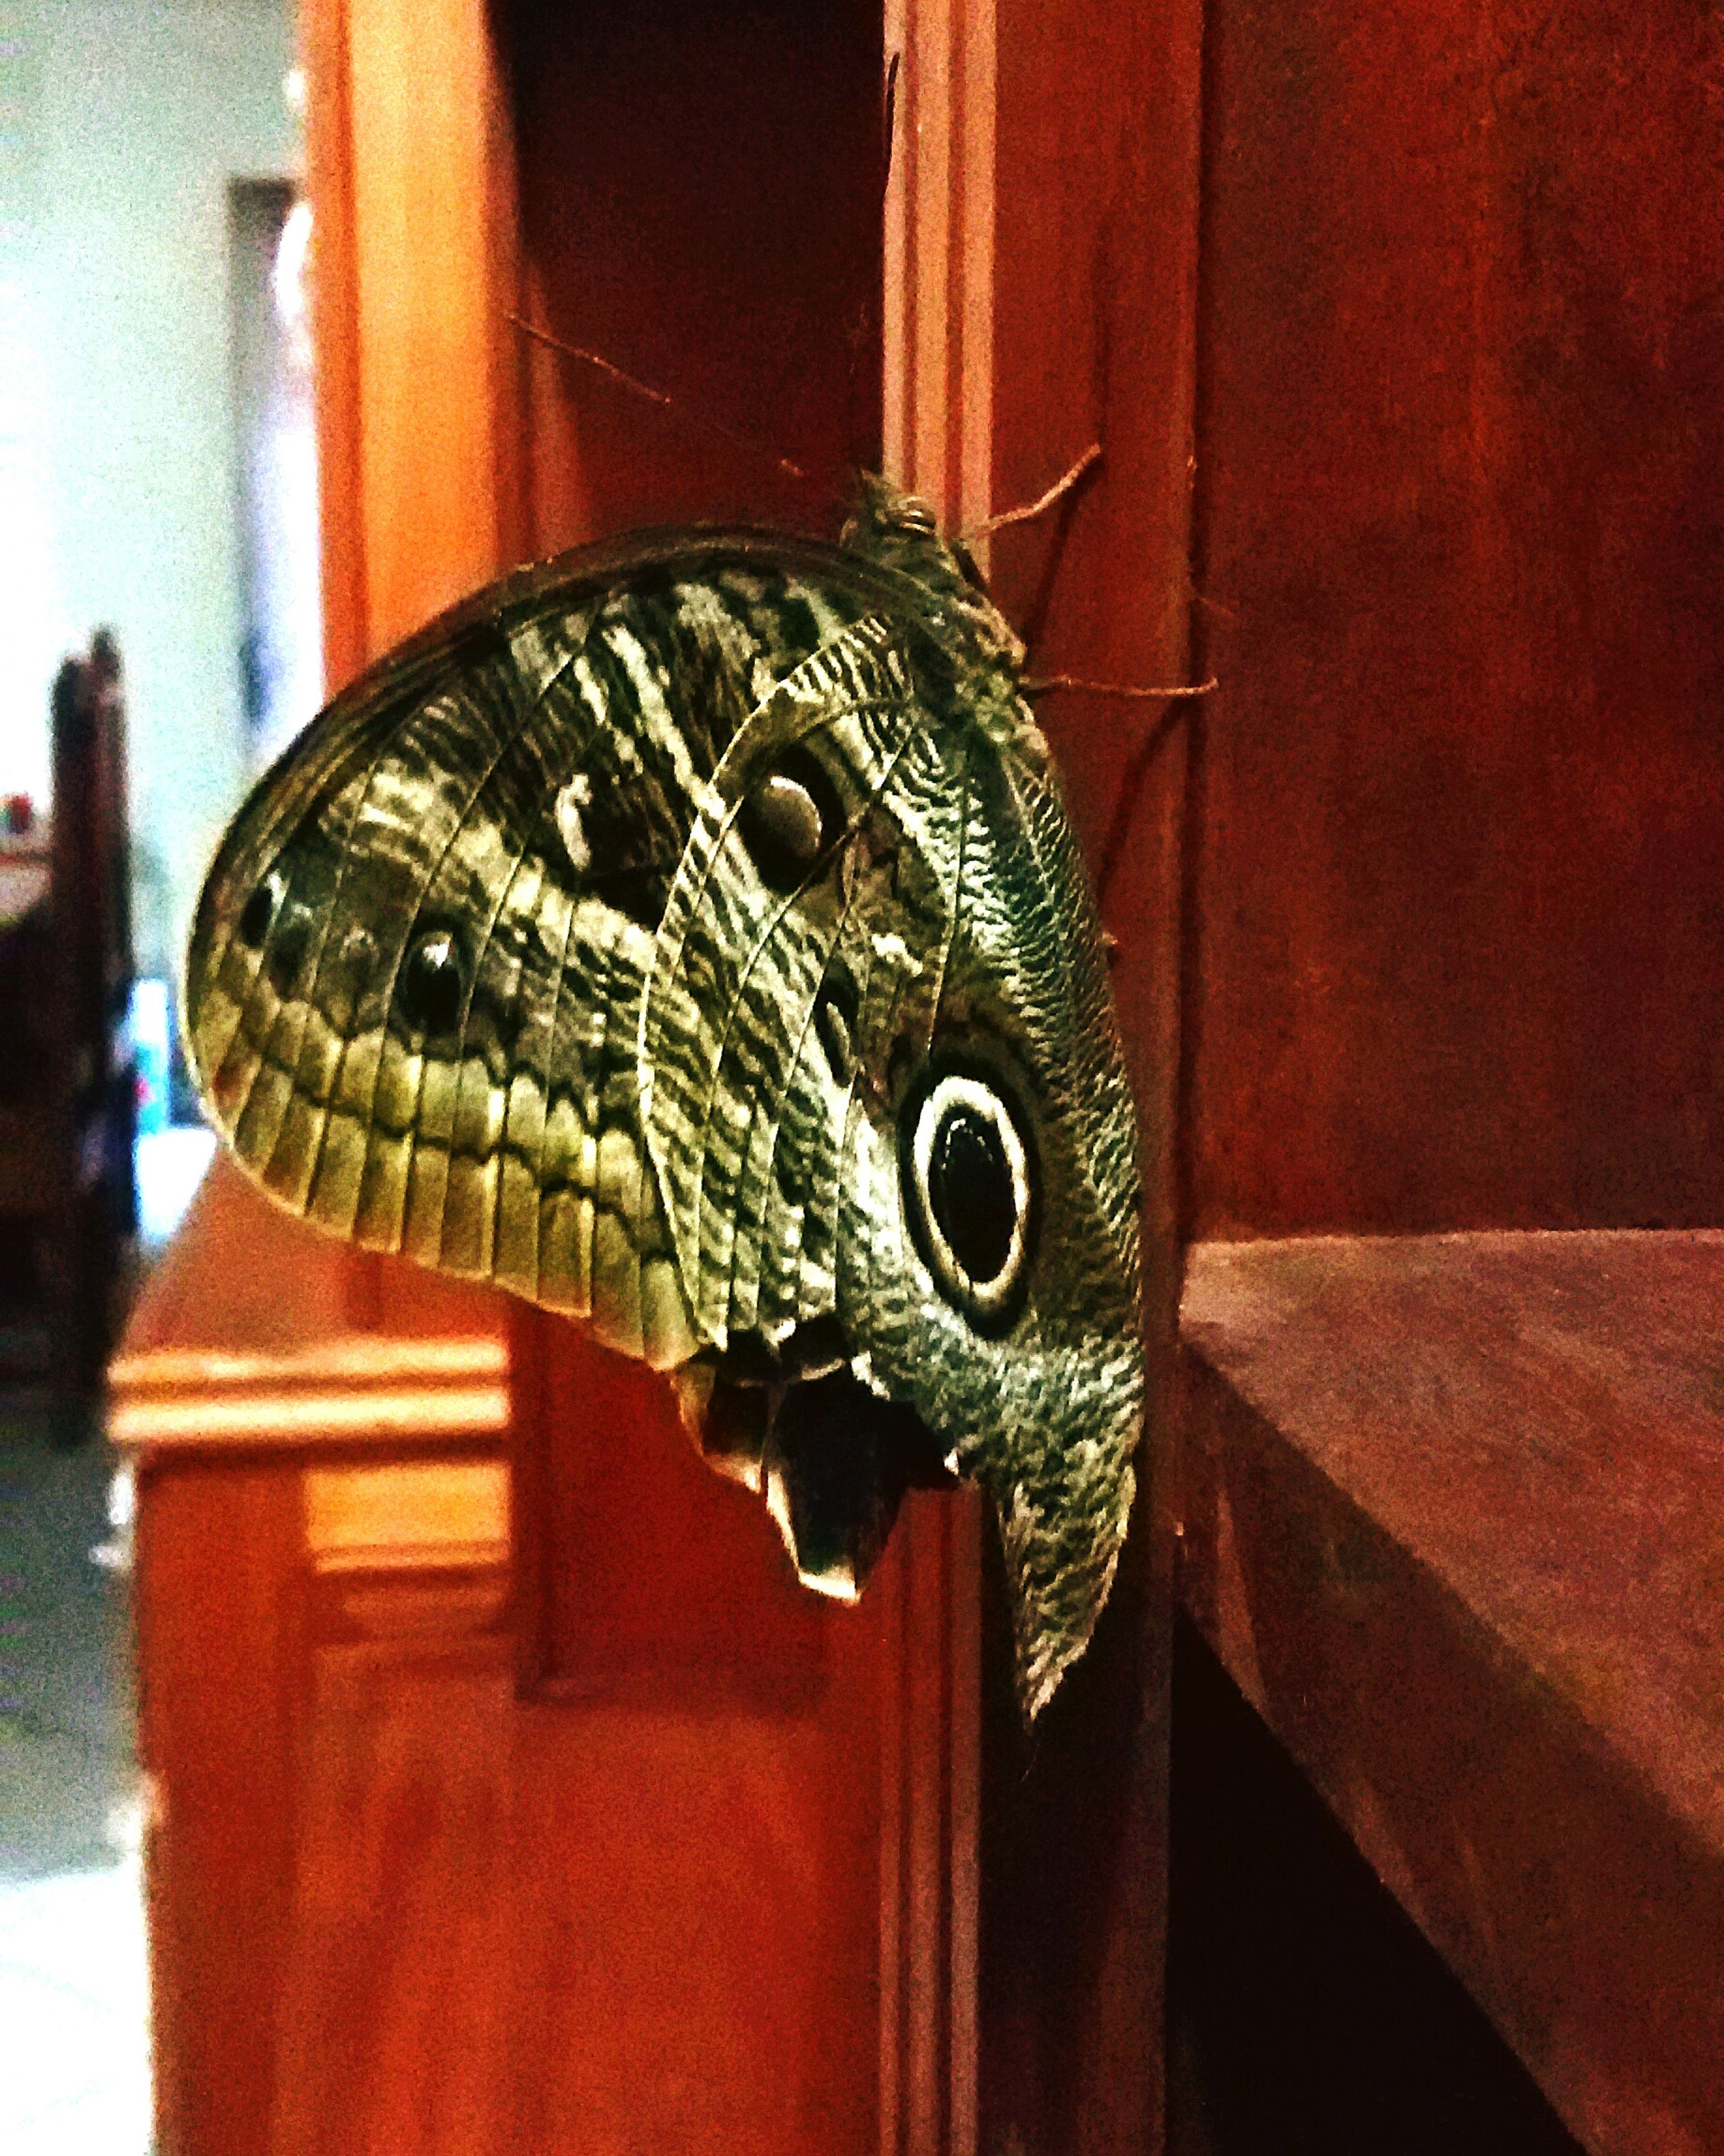 one animal, close-up, focus on foreground, animal themes, animals in the wild, built structure, wildlife, outdoors, day, building exterior, architecture, red, no people, wall - building feature, butterfly - insect, nature, butterfly, insect, side view, animal representation